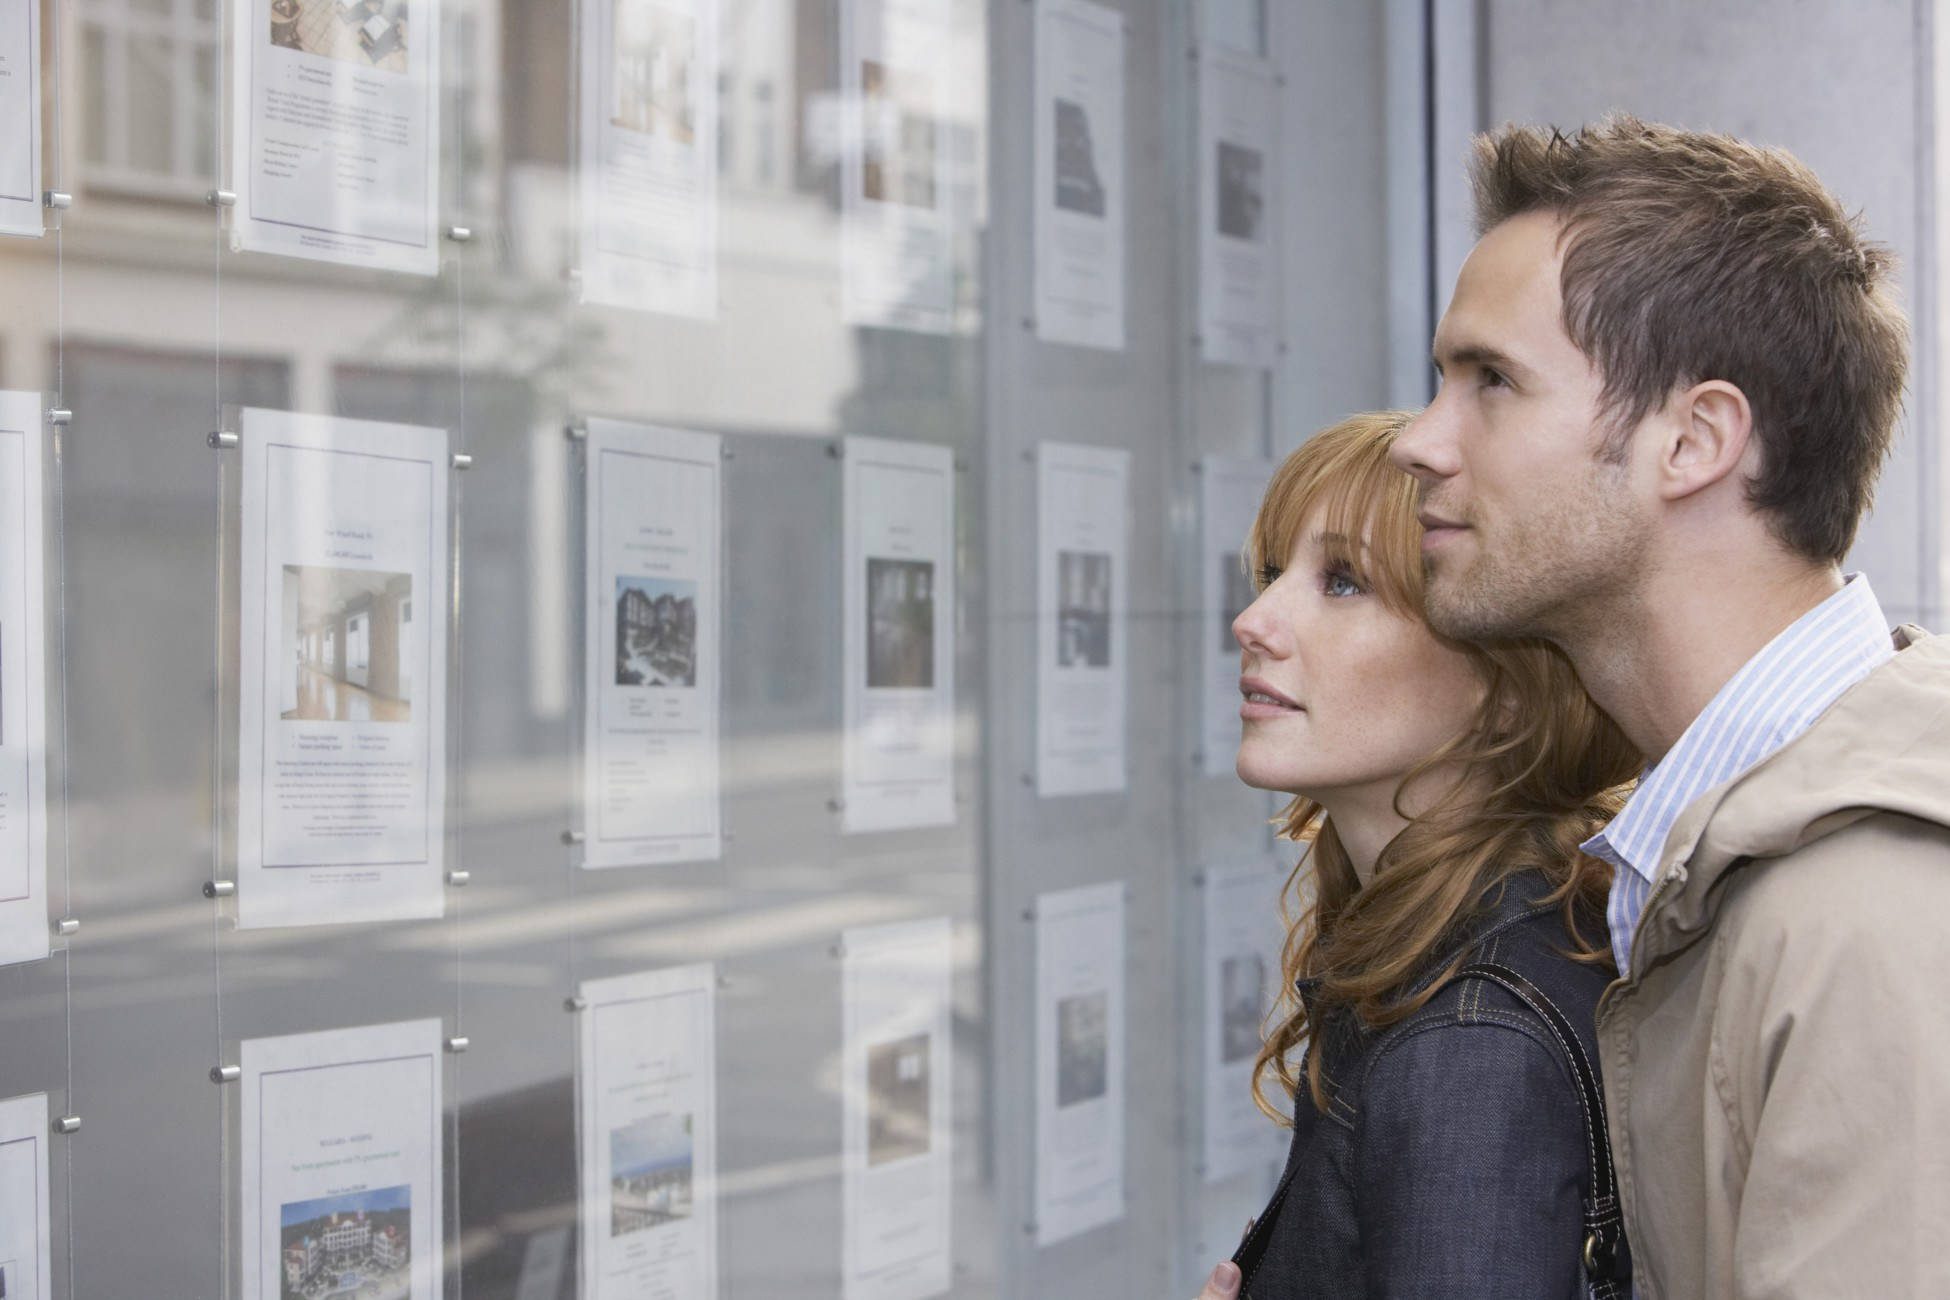 bigstock-Side-view-of-a-young-couple-lo-48552938-e1437665095109.jpg